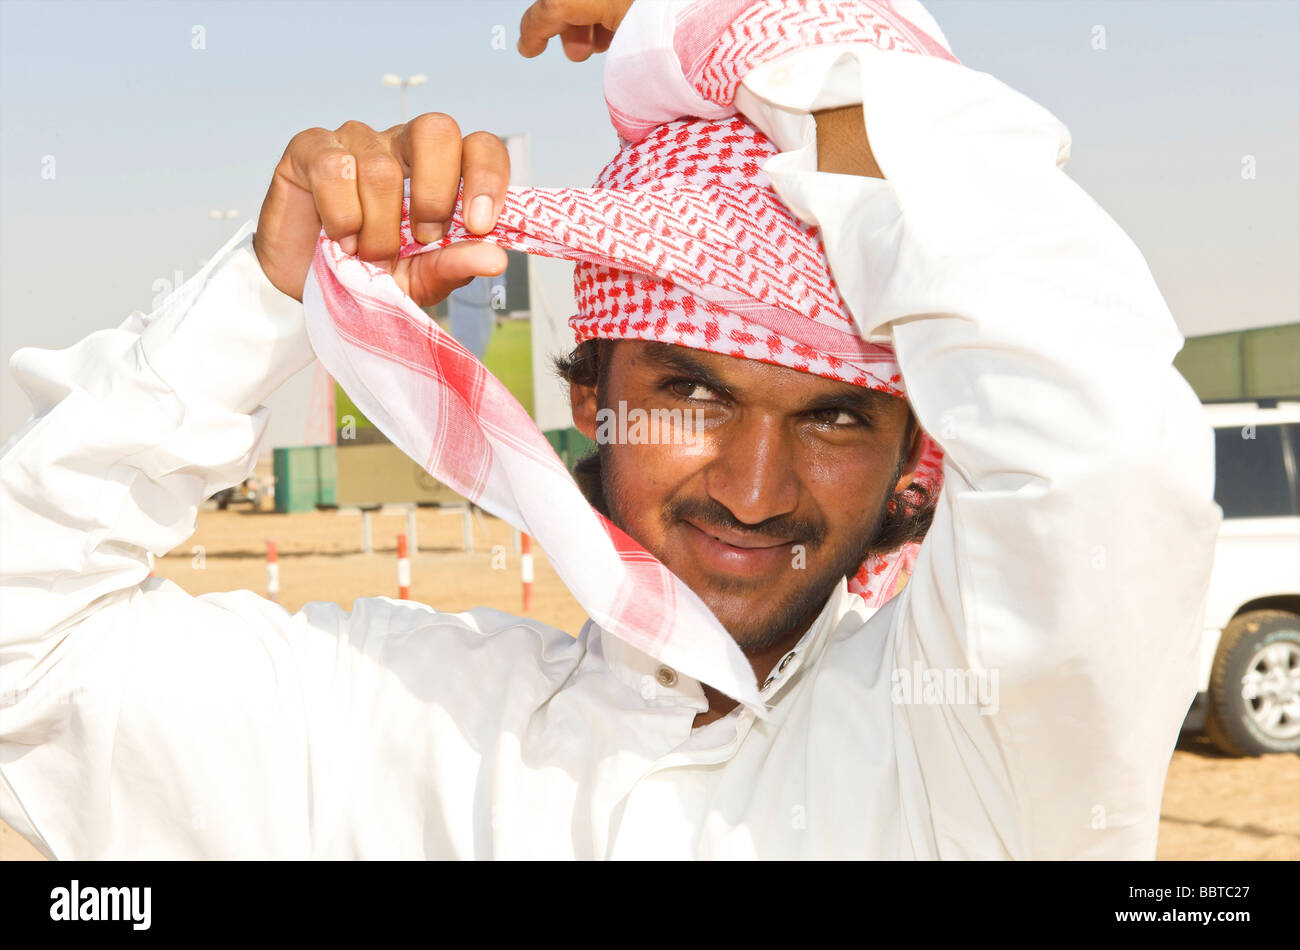 Dubai demonstration of how to attach a headscarf - Stock Image